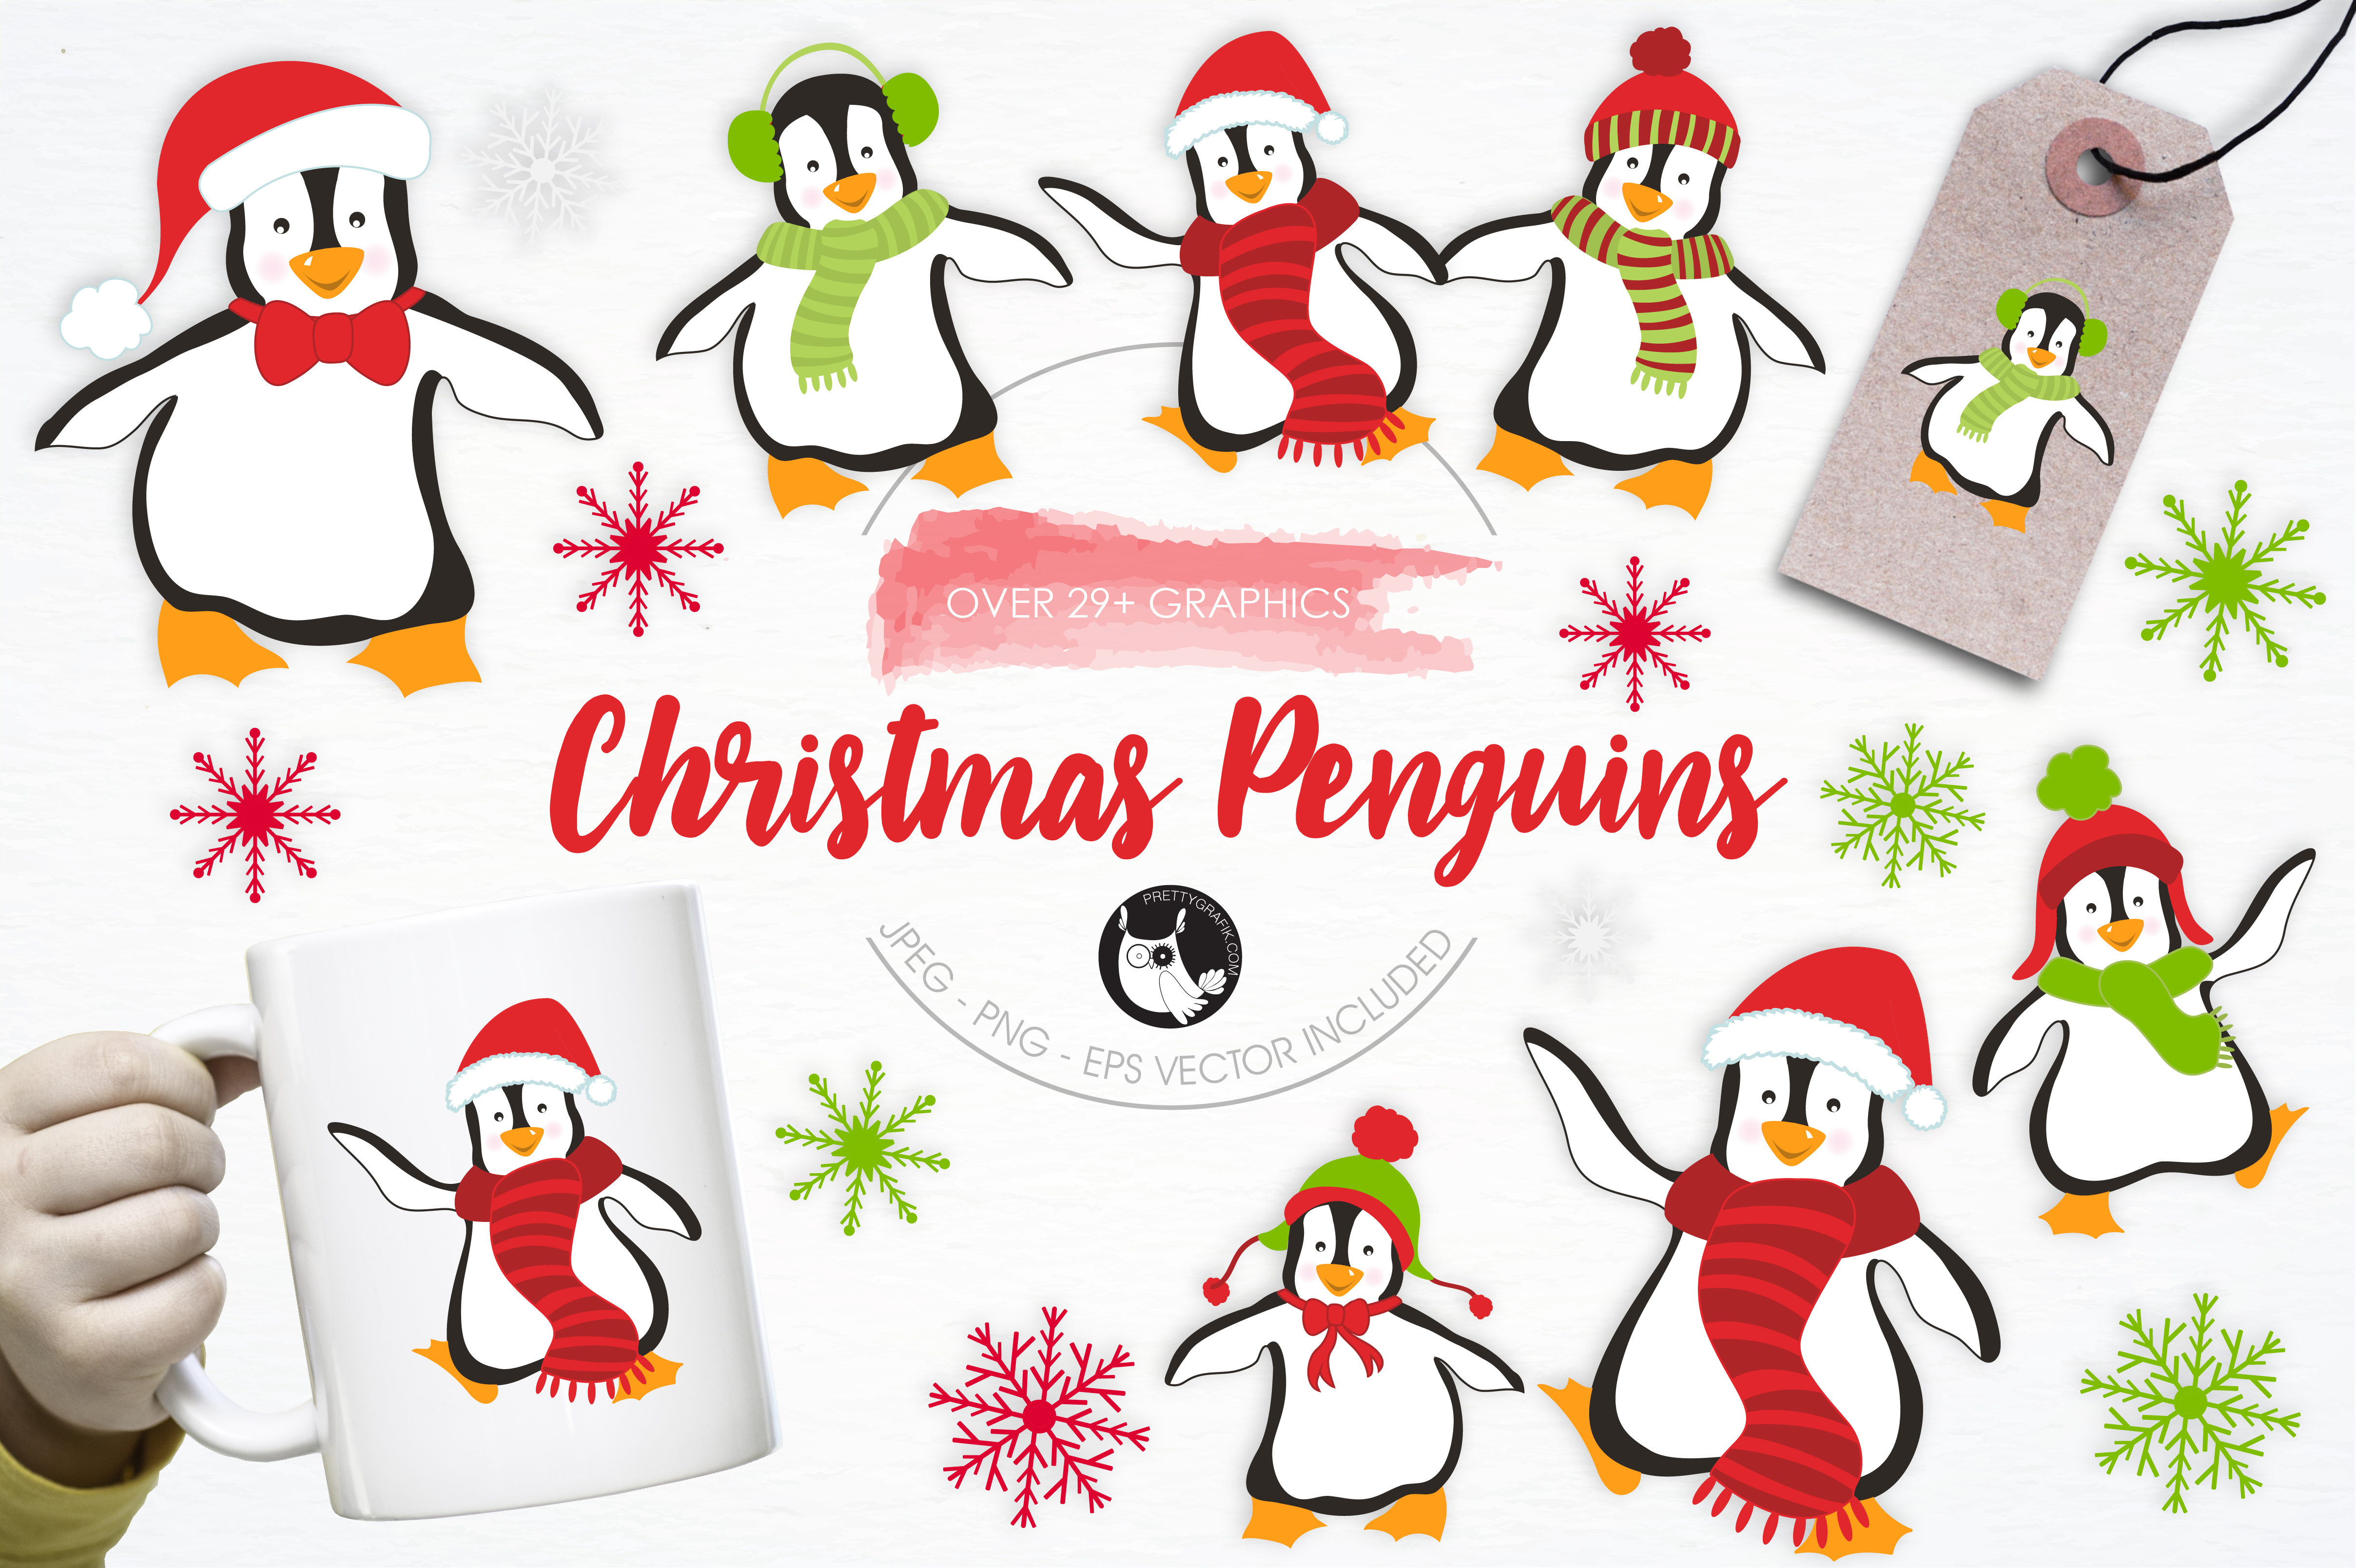 Download Free Christmas Penguins Graphic By Prettygrafik Creative Fabrica for Cricut Explore, Silhouette and other cutting machines.